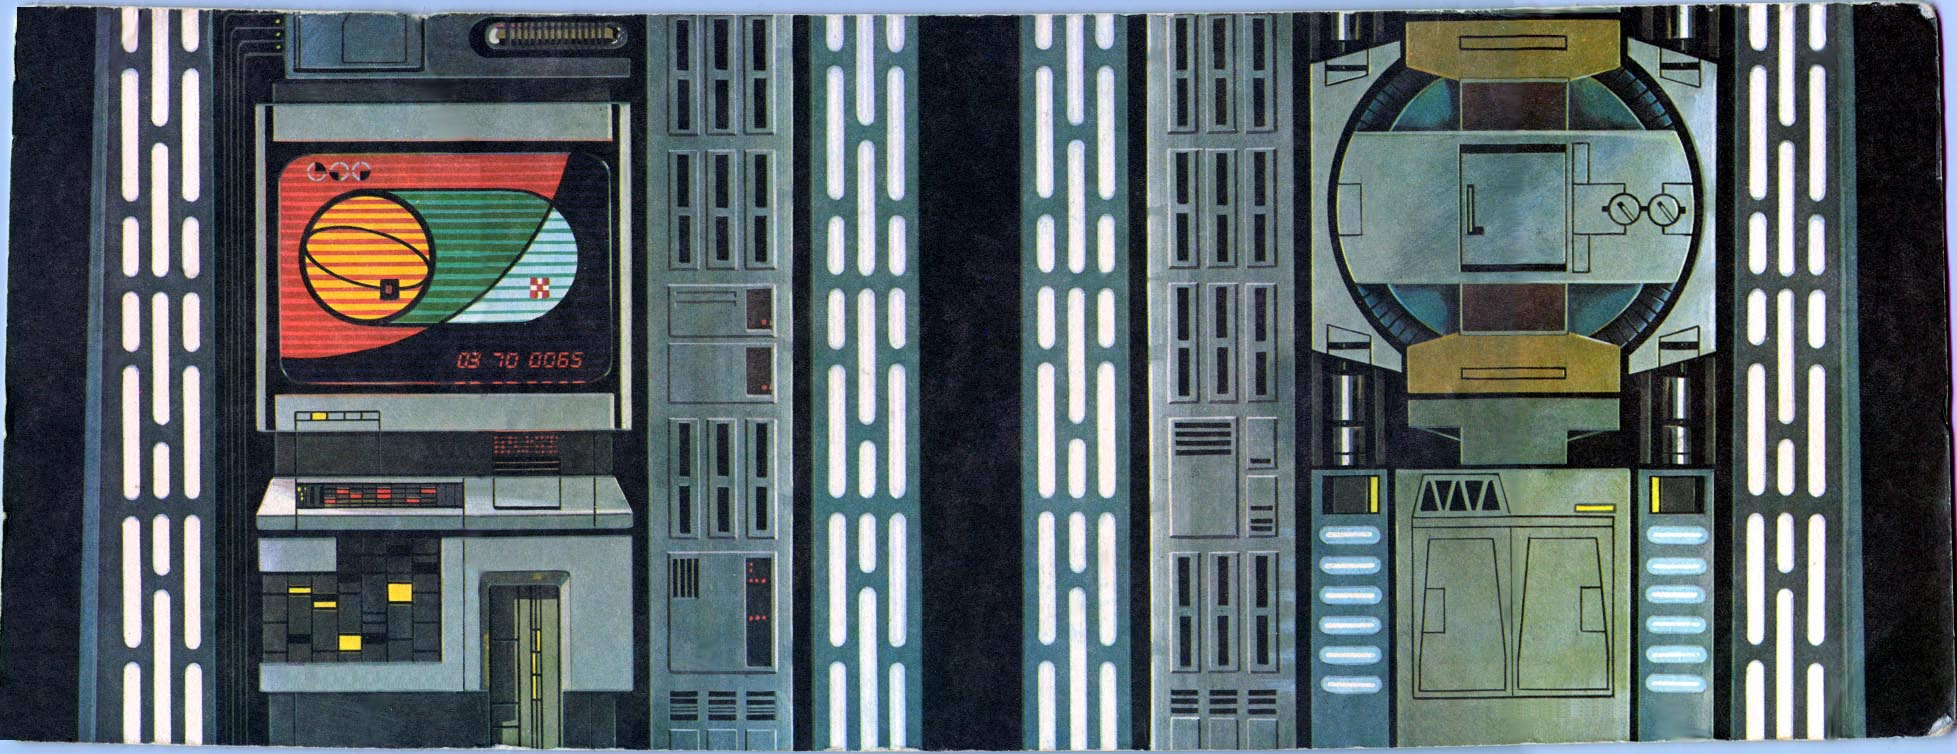 39 Star Wars Space Station Background On Wallpapersafari